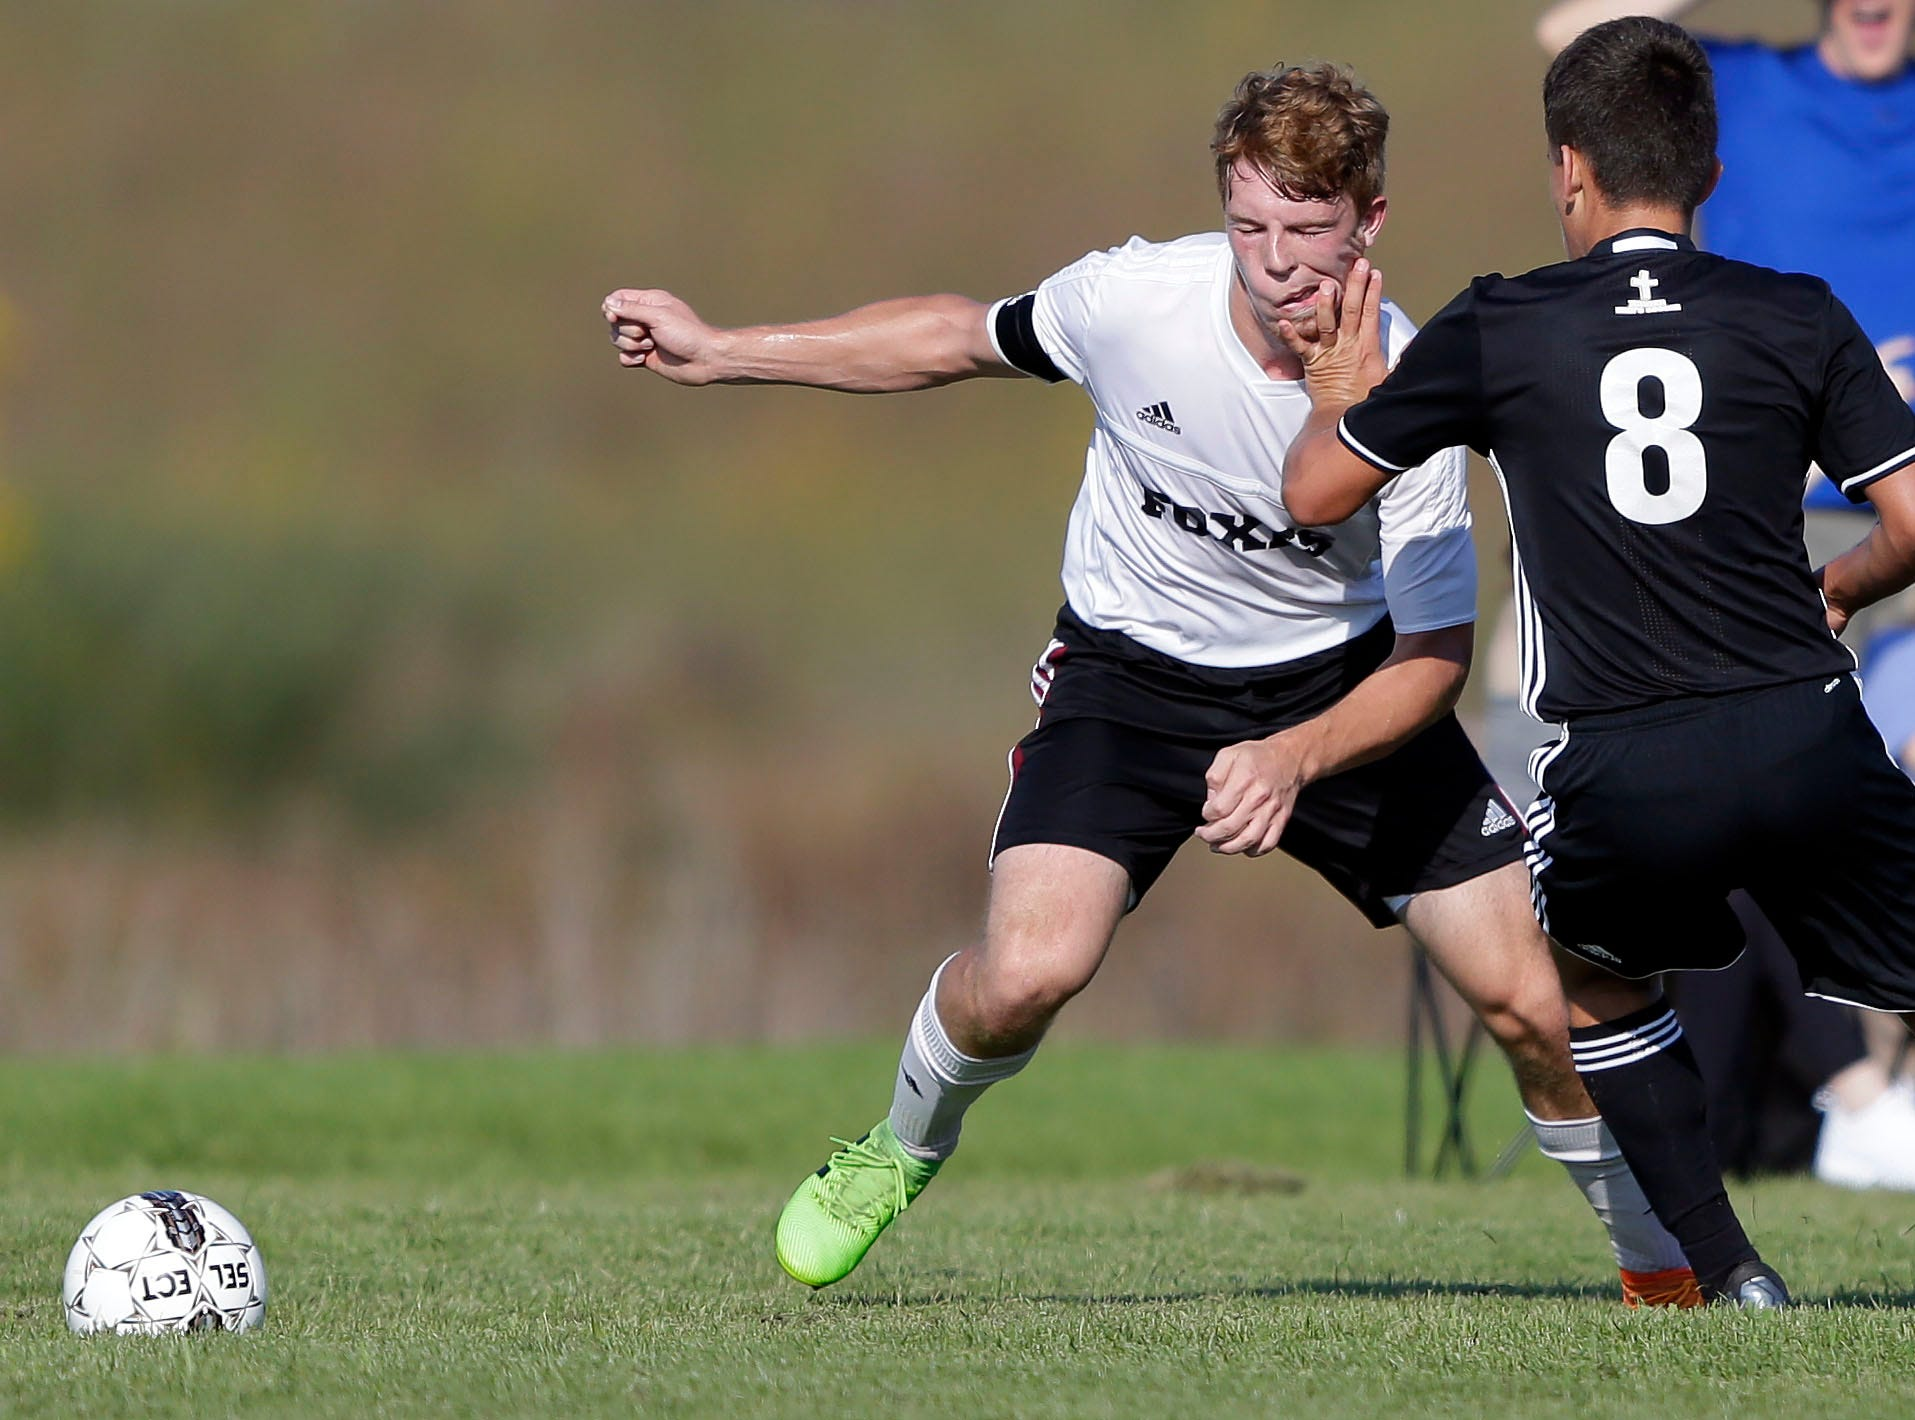 Blaine Van Asten of Fox Valley Lutheran catches a hand from Colin Podojil of Xavier in the Xavier boys soccer tournament Saturday, September 15, 2018, at the Scheels USA Sports Complex in Appleton, Wis.Ron Page/USA TODAY NETWORK-Wisconsin